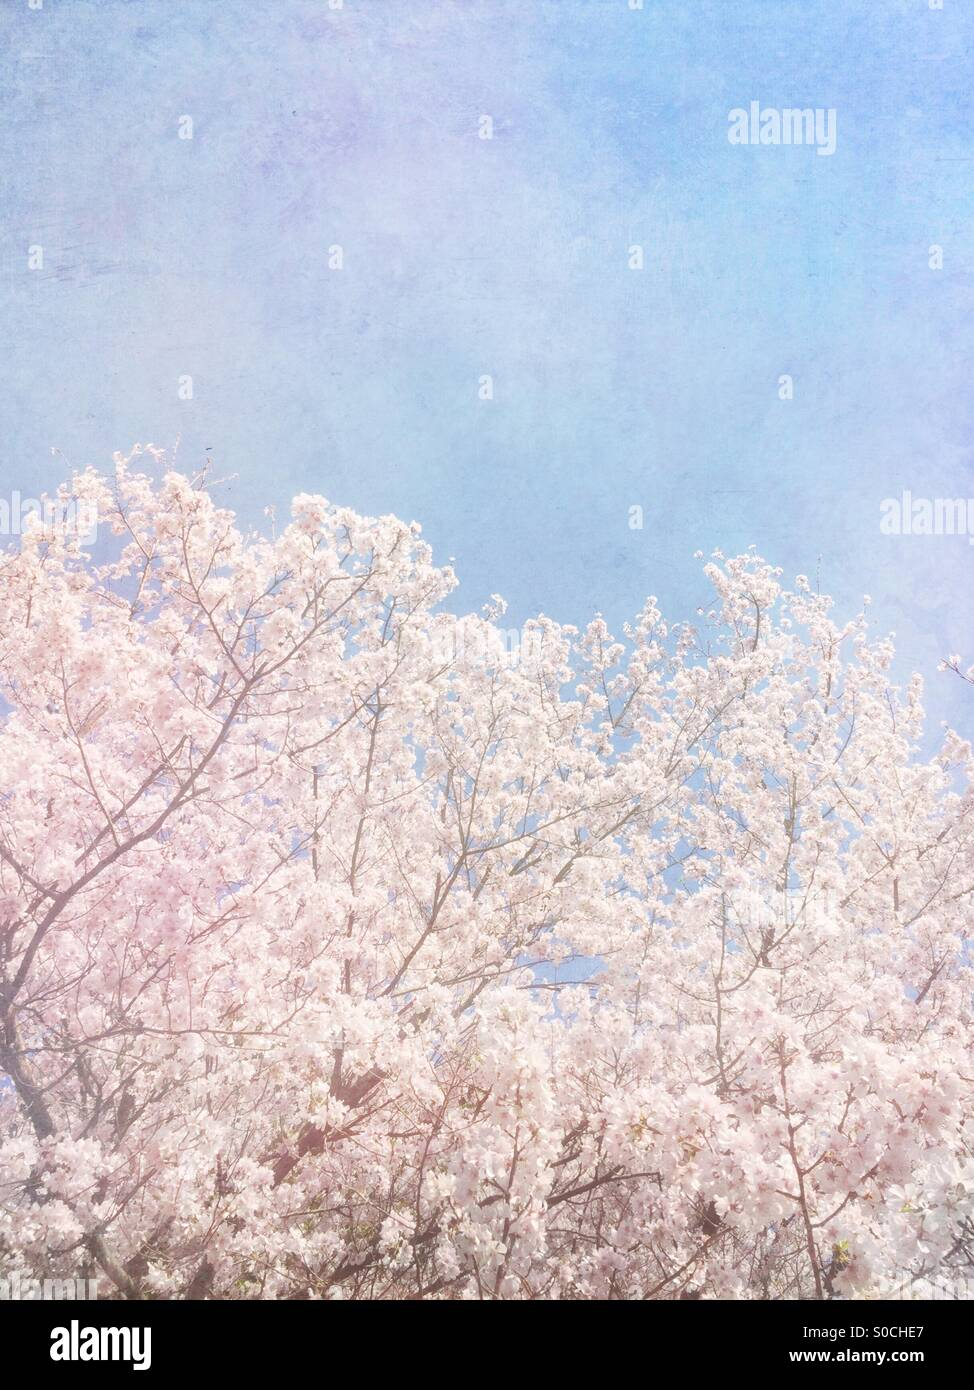 Beautiful white sakura or cherry blossoms in Spring, with soft blue sky and vintage paper overlay. - Stock Image